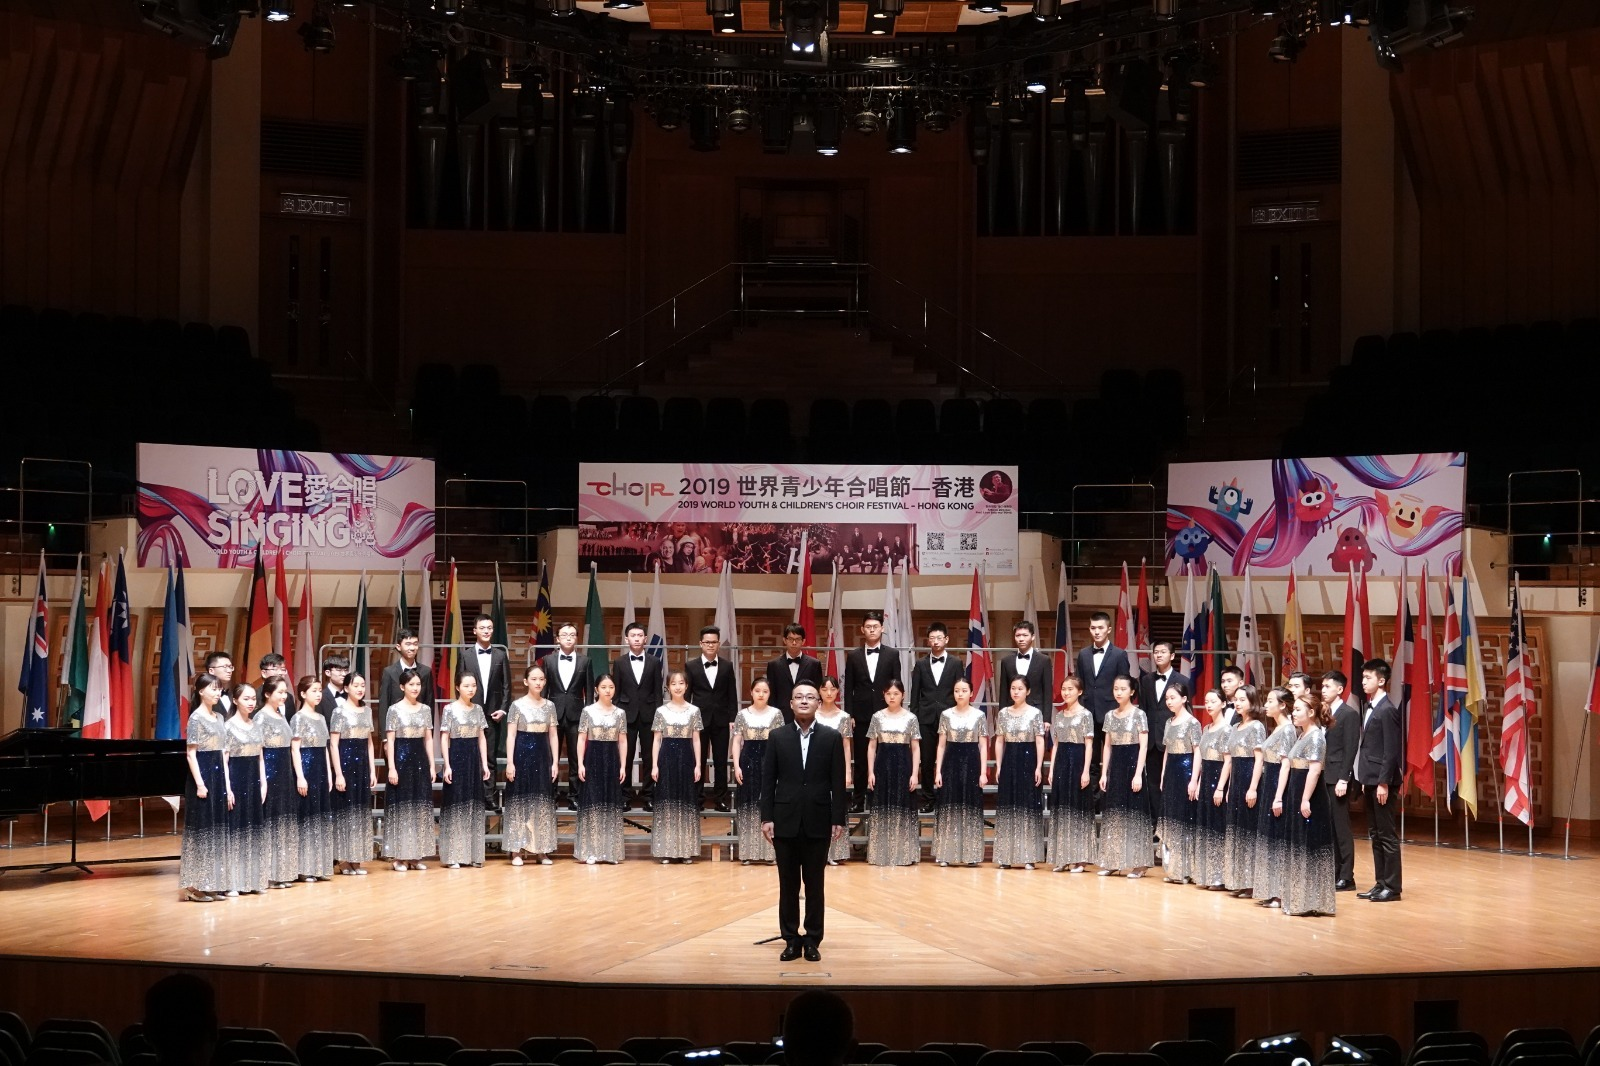 A choir performs at the World Youth & Children's Choir Festival (WYCCF) 2019 in Hong Kong, China